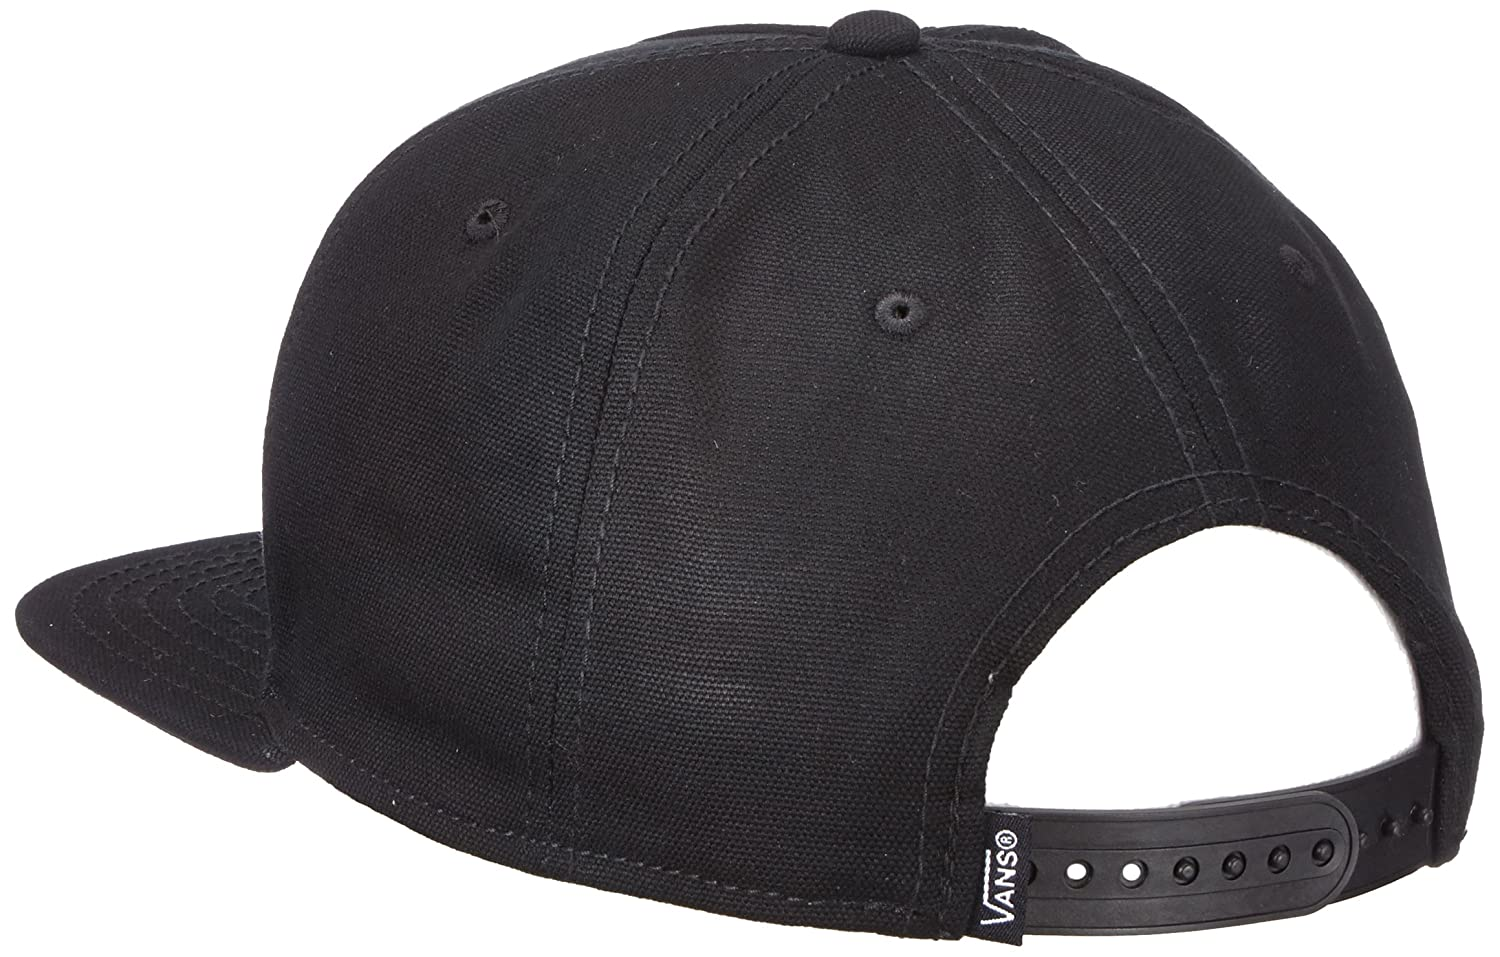 VANS - Vans Hat - Classic Patch - Black - One Size at Amazon Mens Clothing store: Baseball Caps